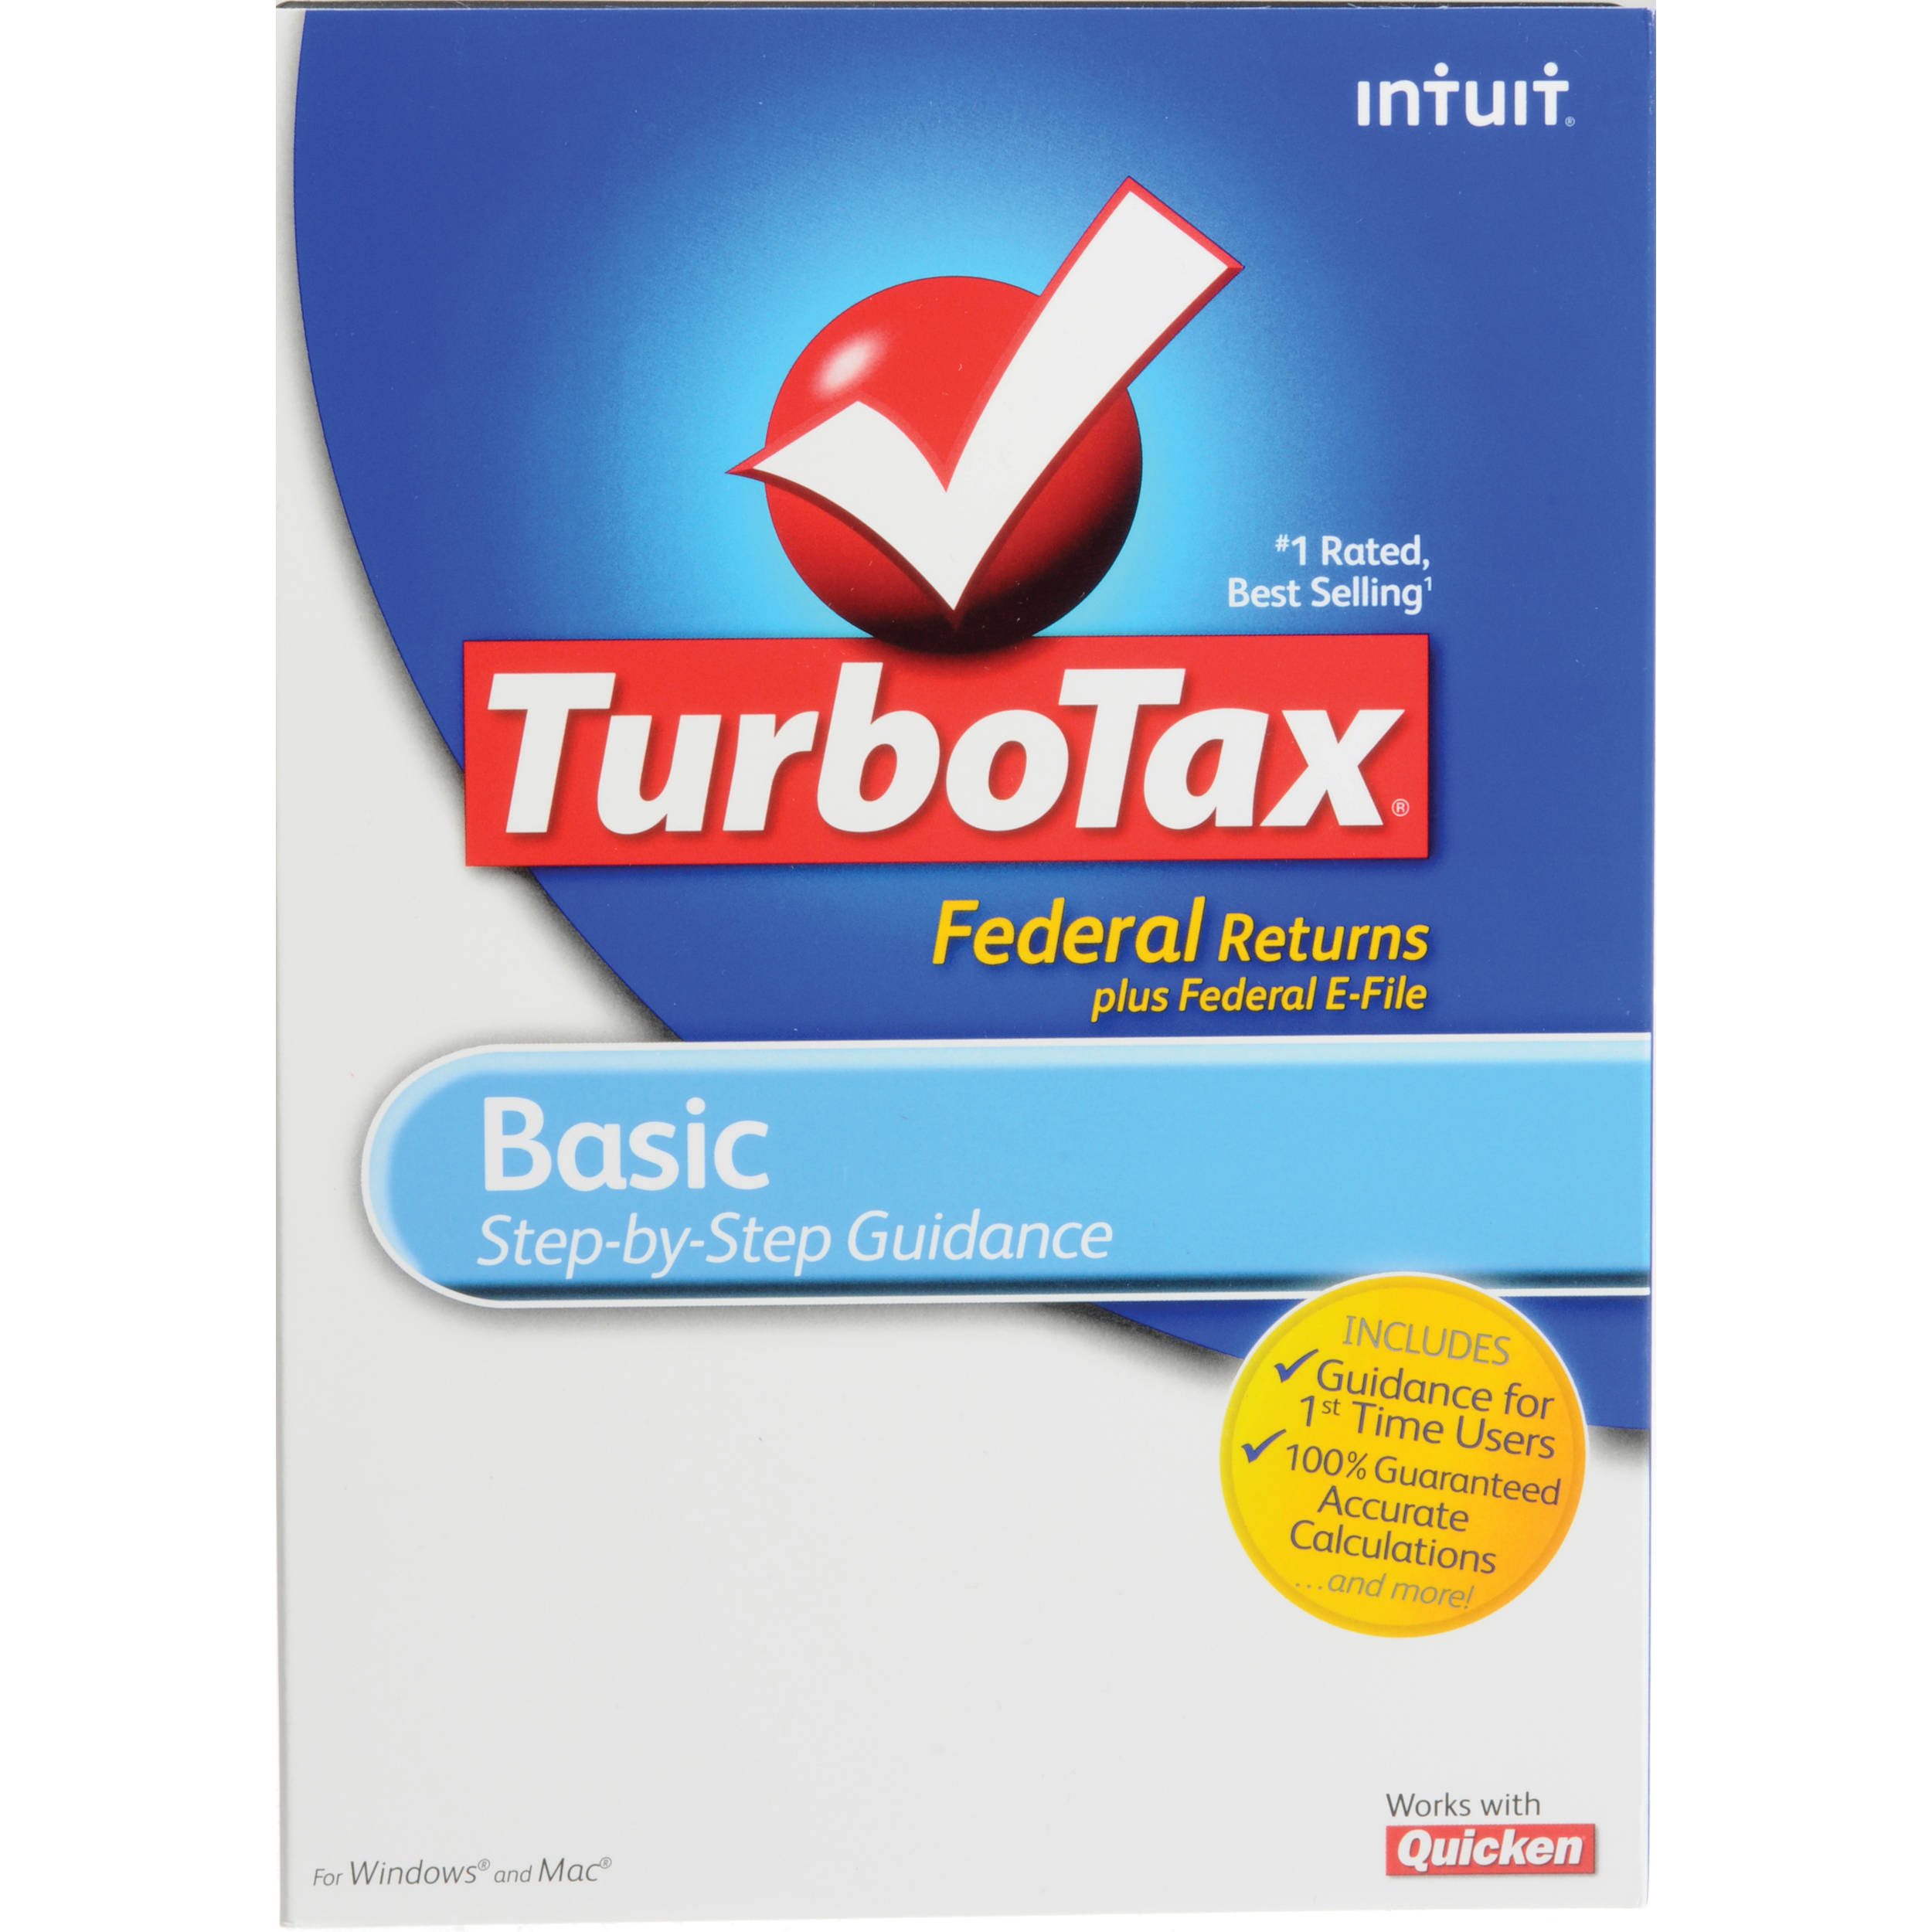 turbotax 2017 netfile not working Turbotax 2018 Free Download